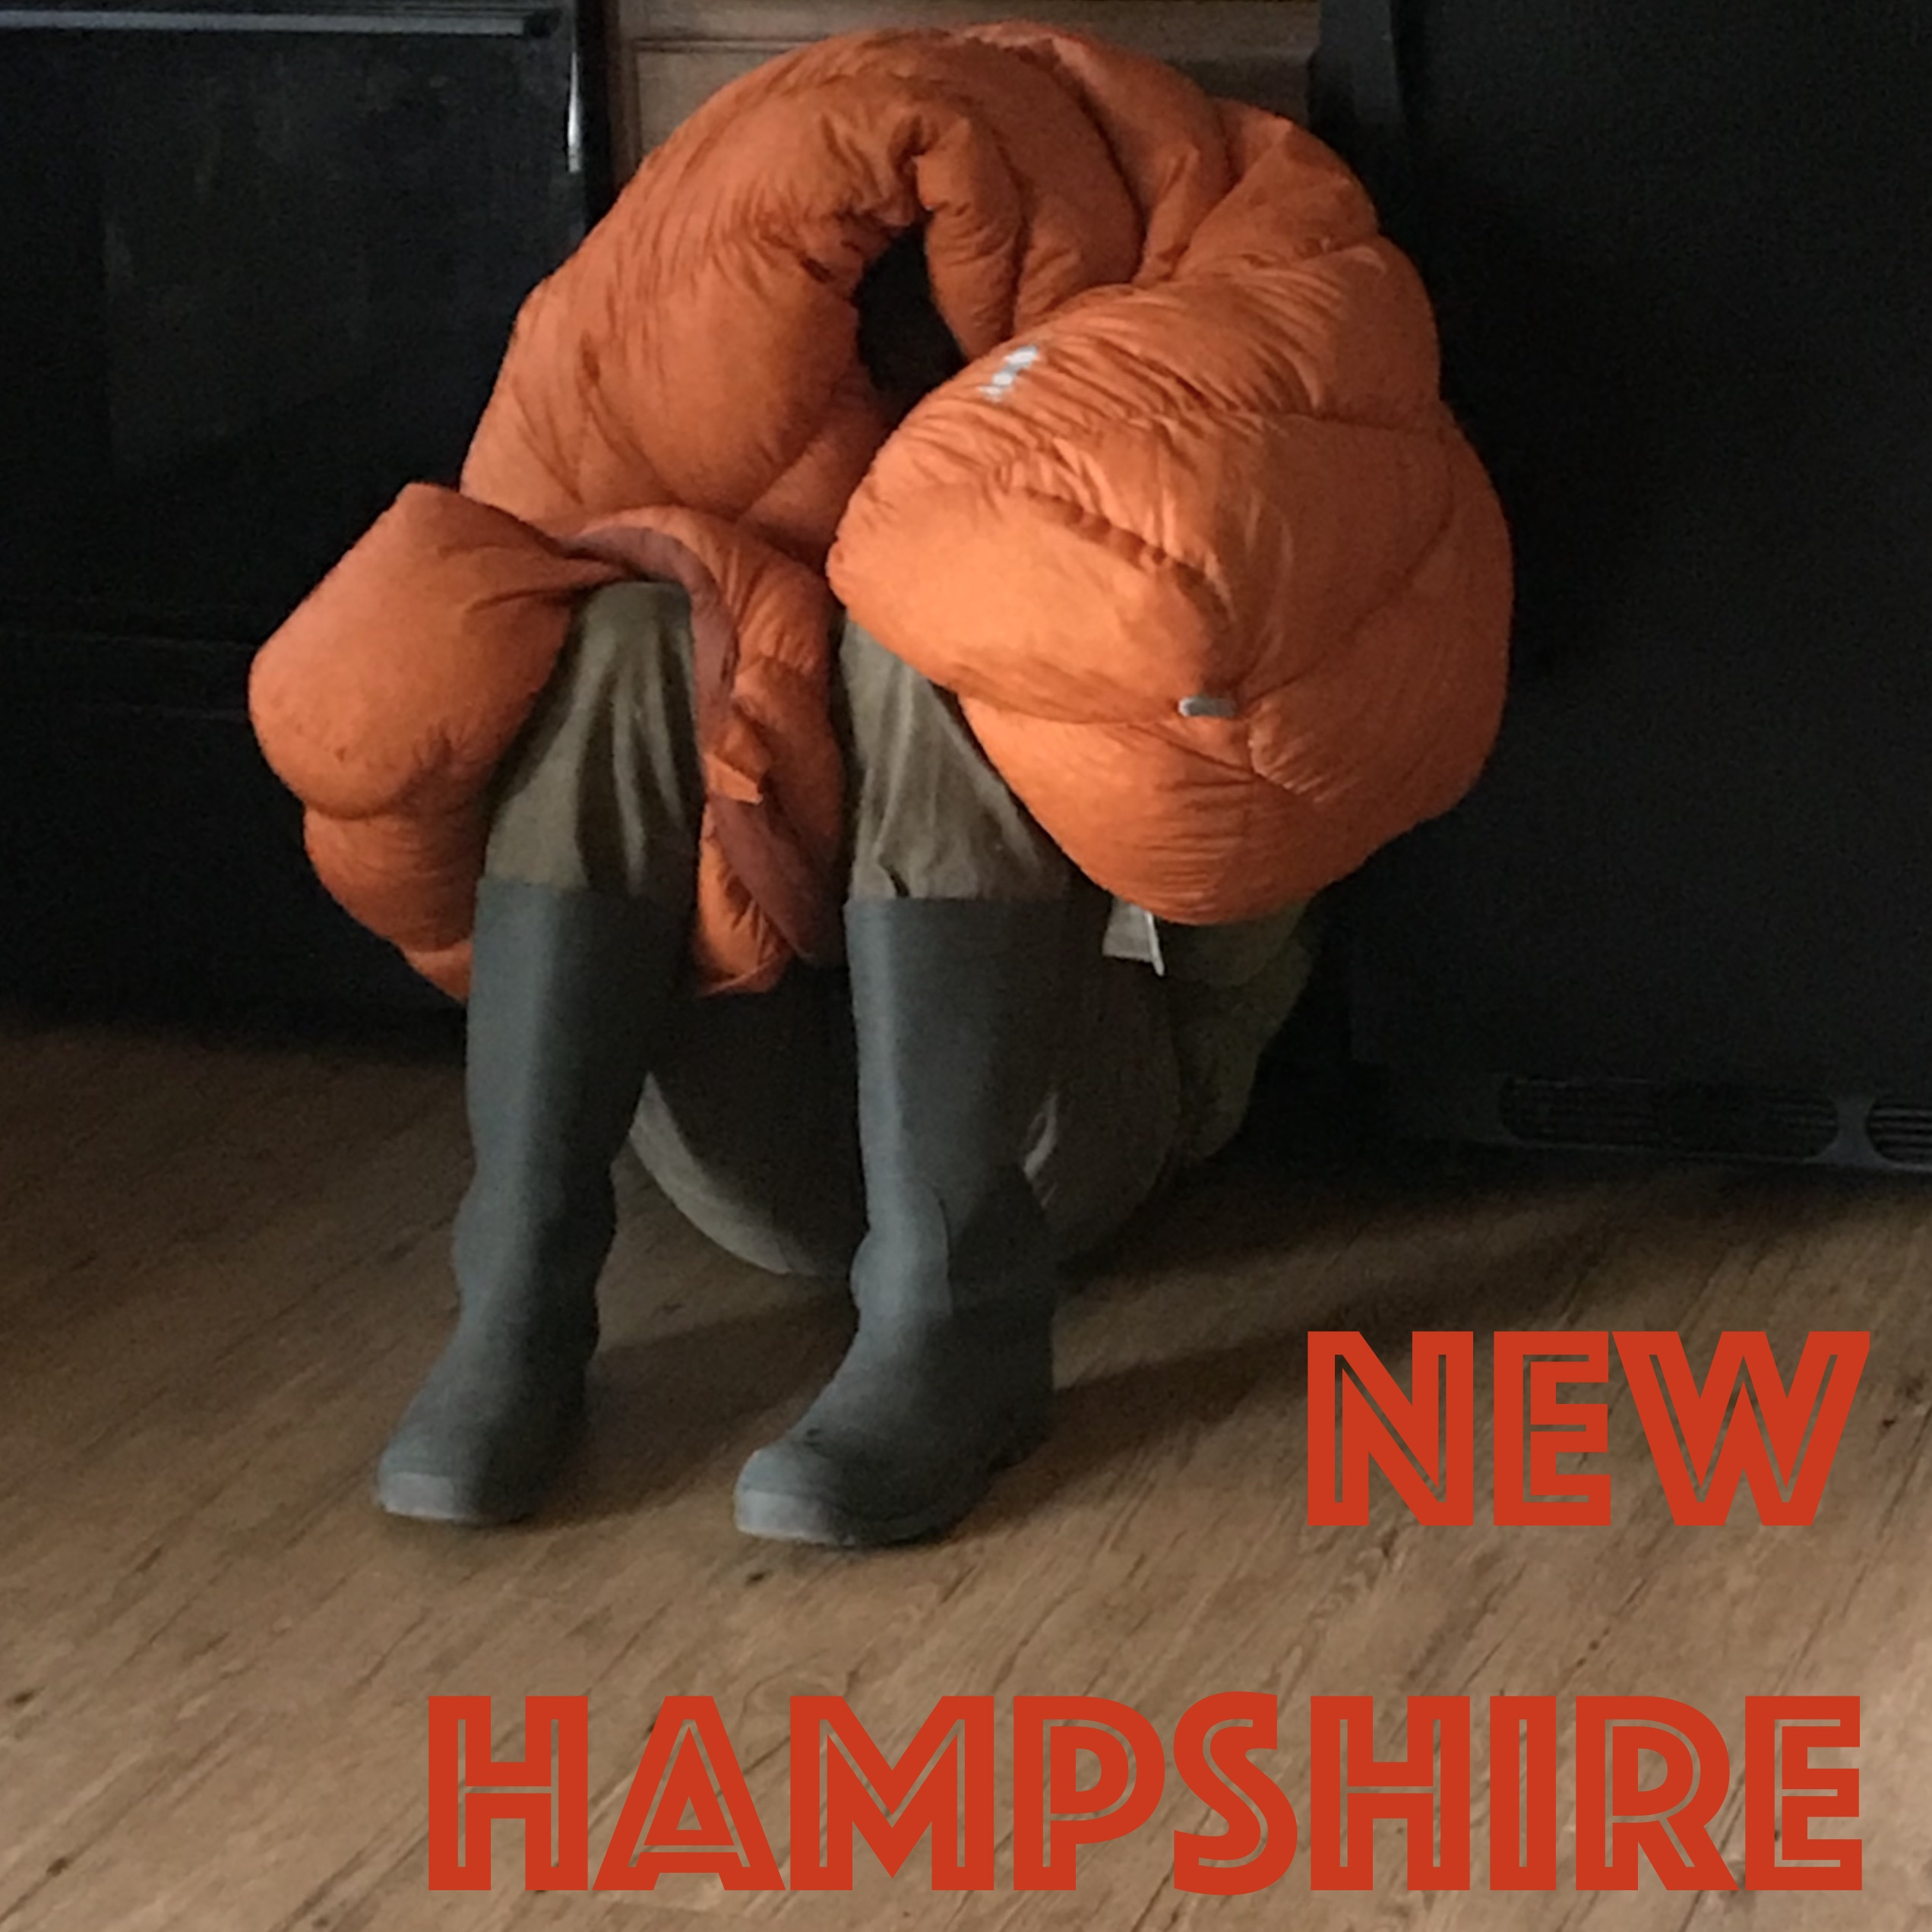 State #3 - New Hampshire